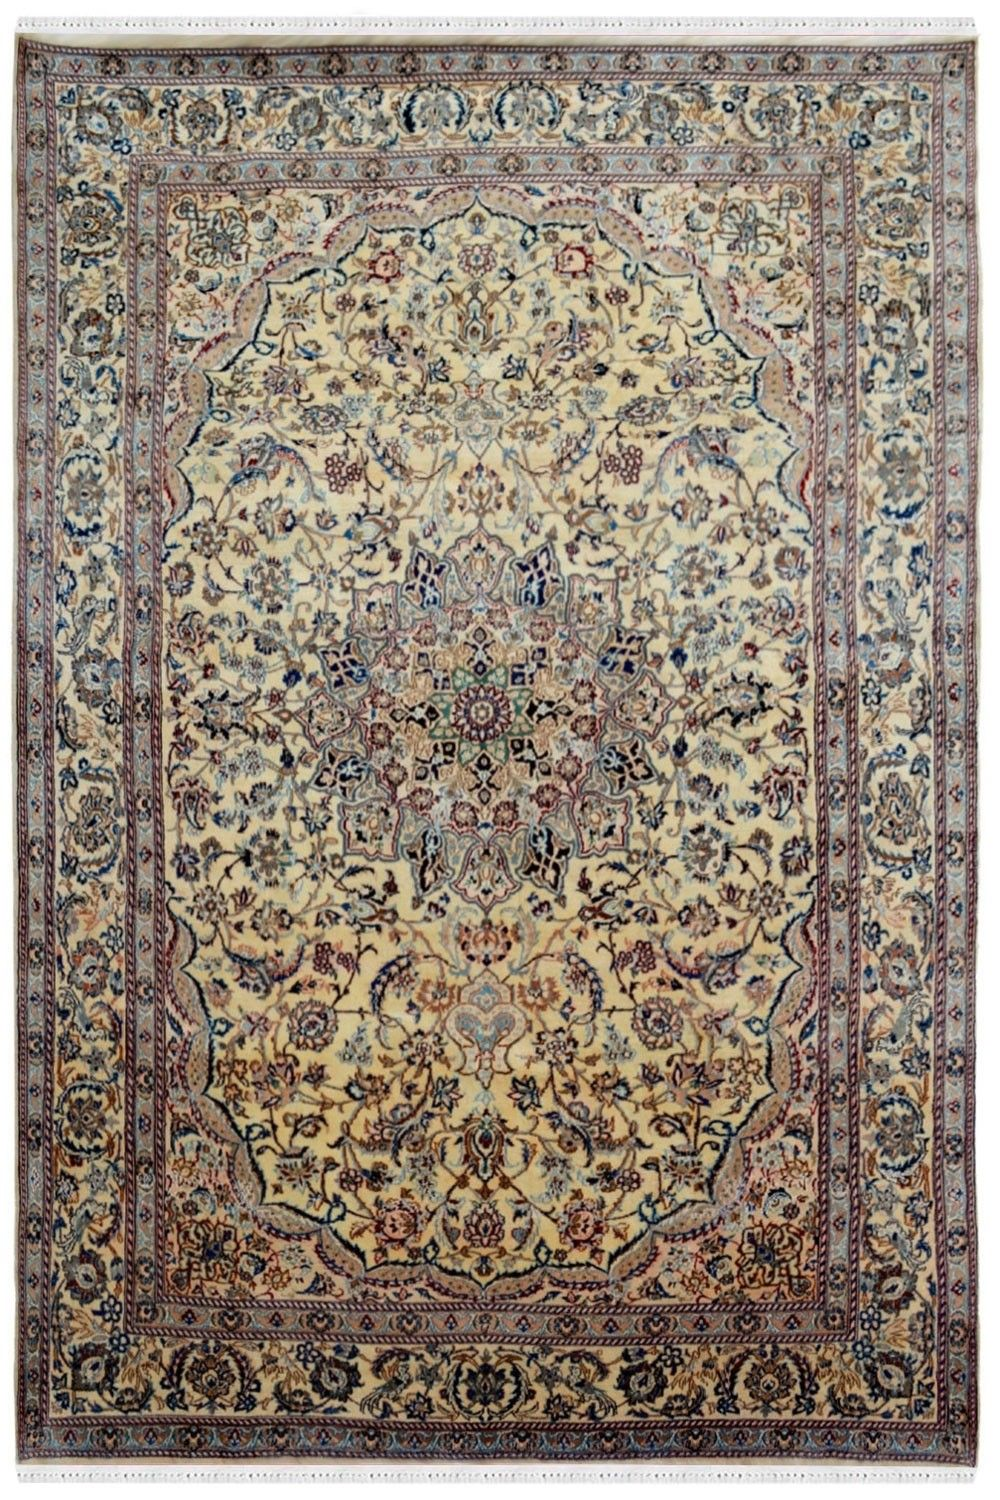 Ivory Oval Medallion Pure Persian Wool Rug Online In 2020 Rugs